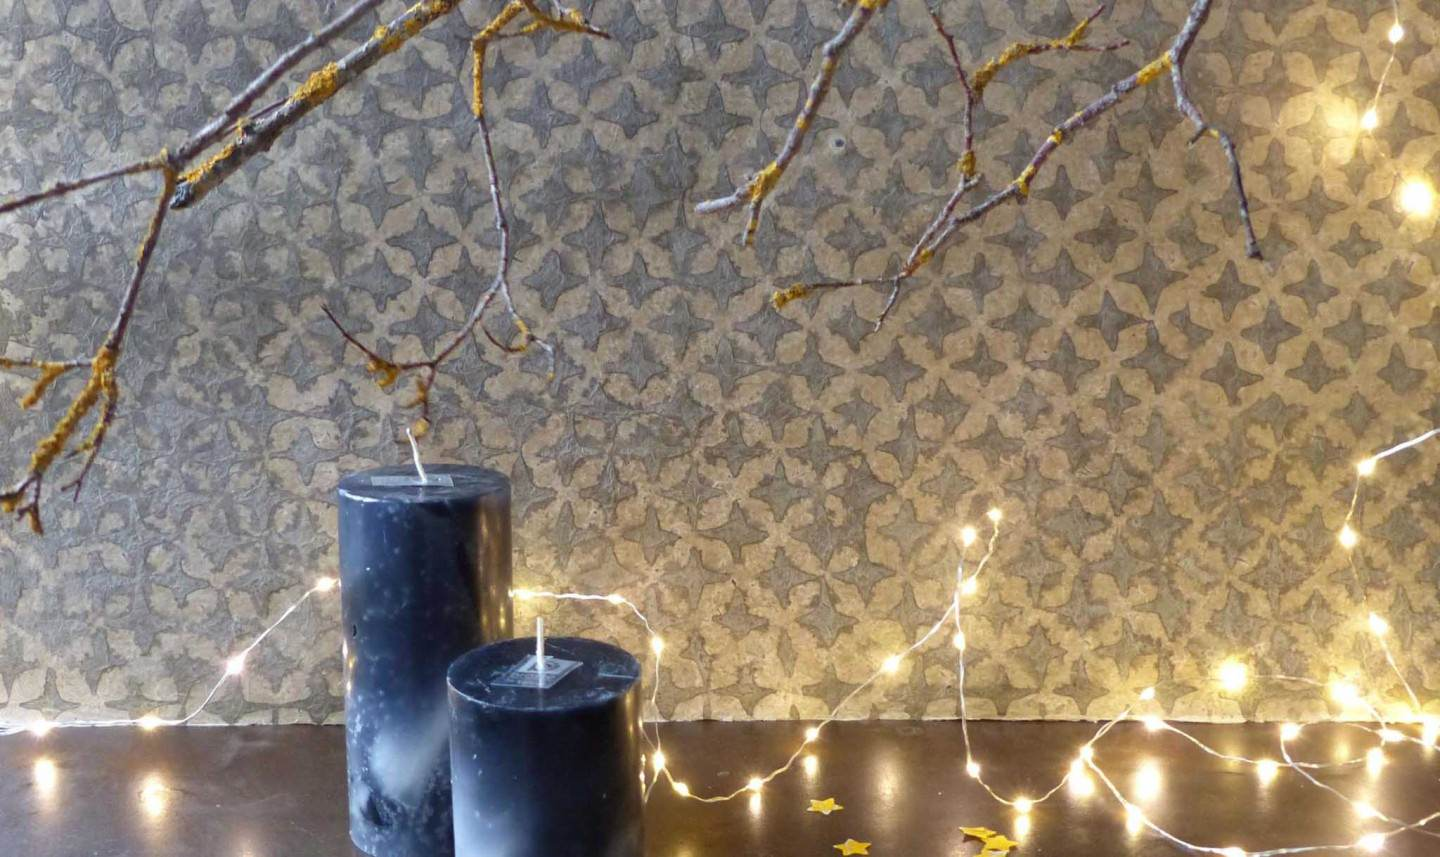 A new interpretation of wallpapers: Le Monde Sauvage